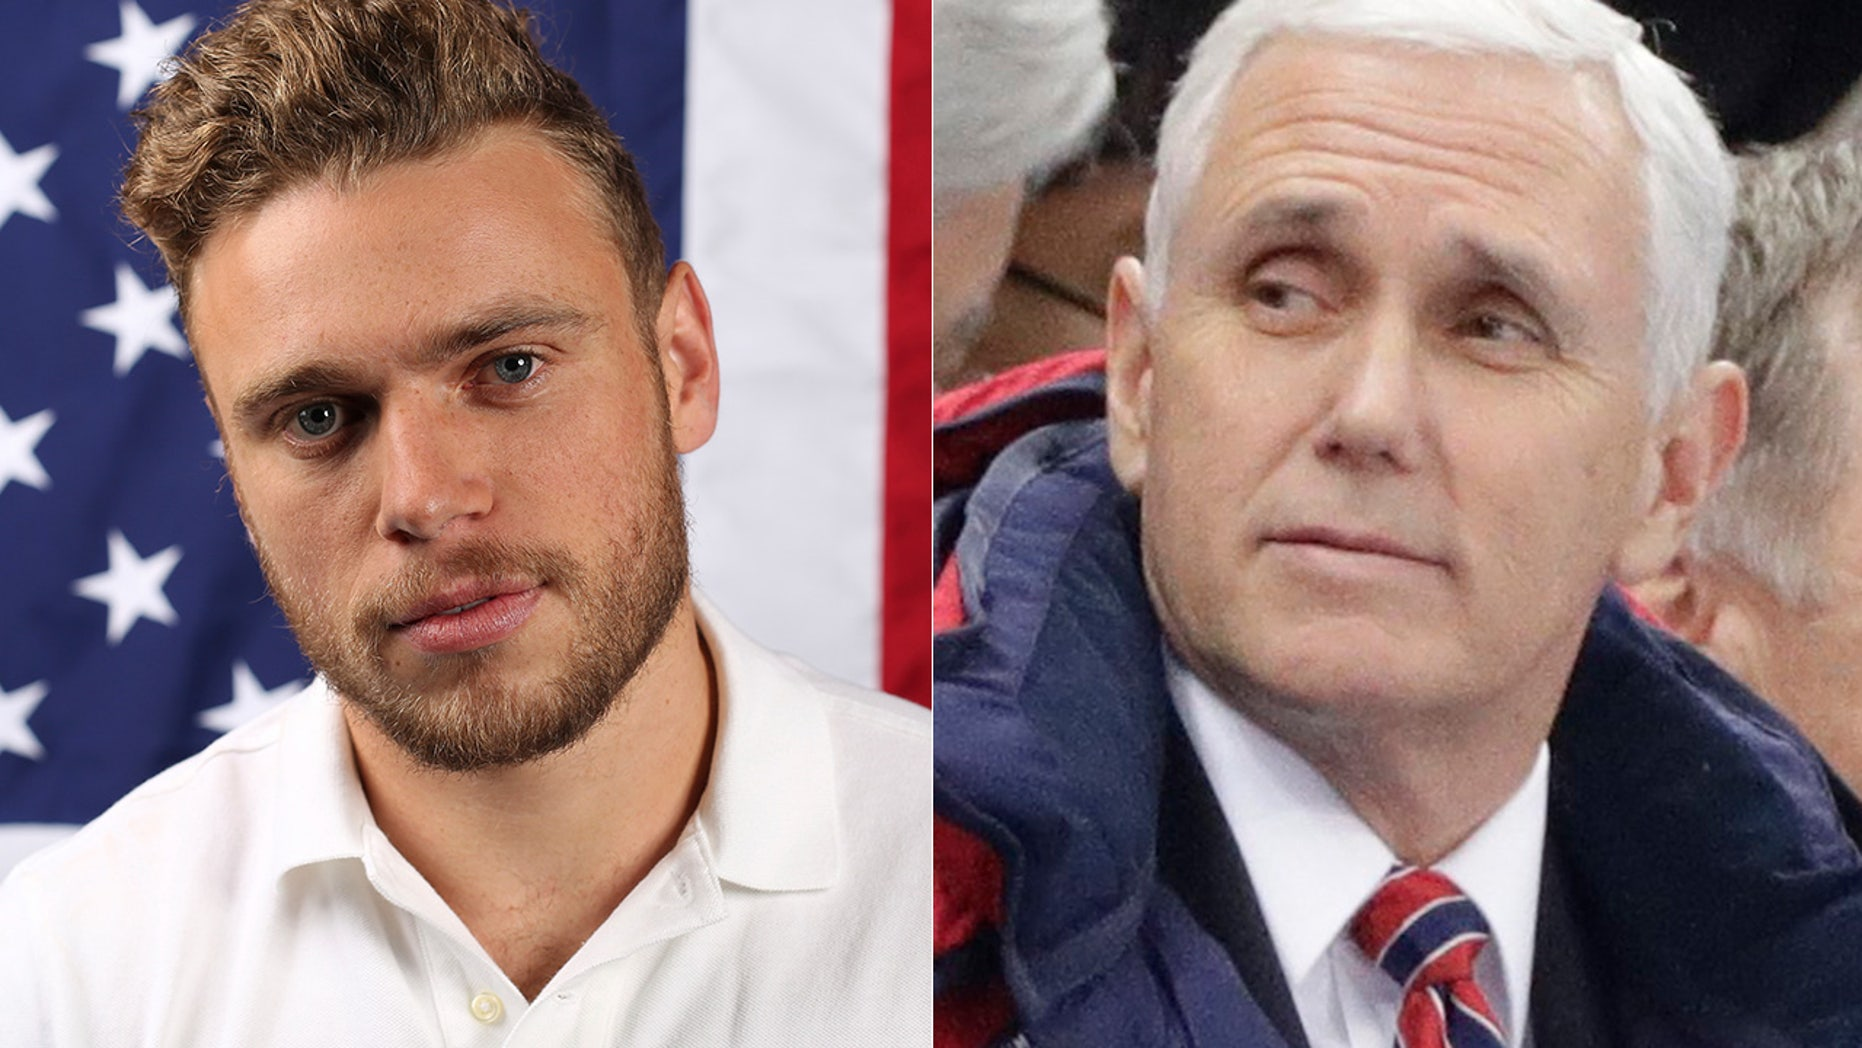 Olympic skier Gus Kenworthy, left, and Vice President Mike Pence.